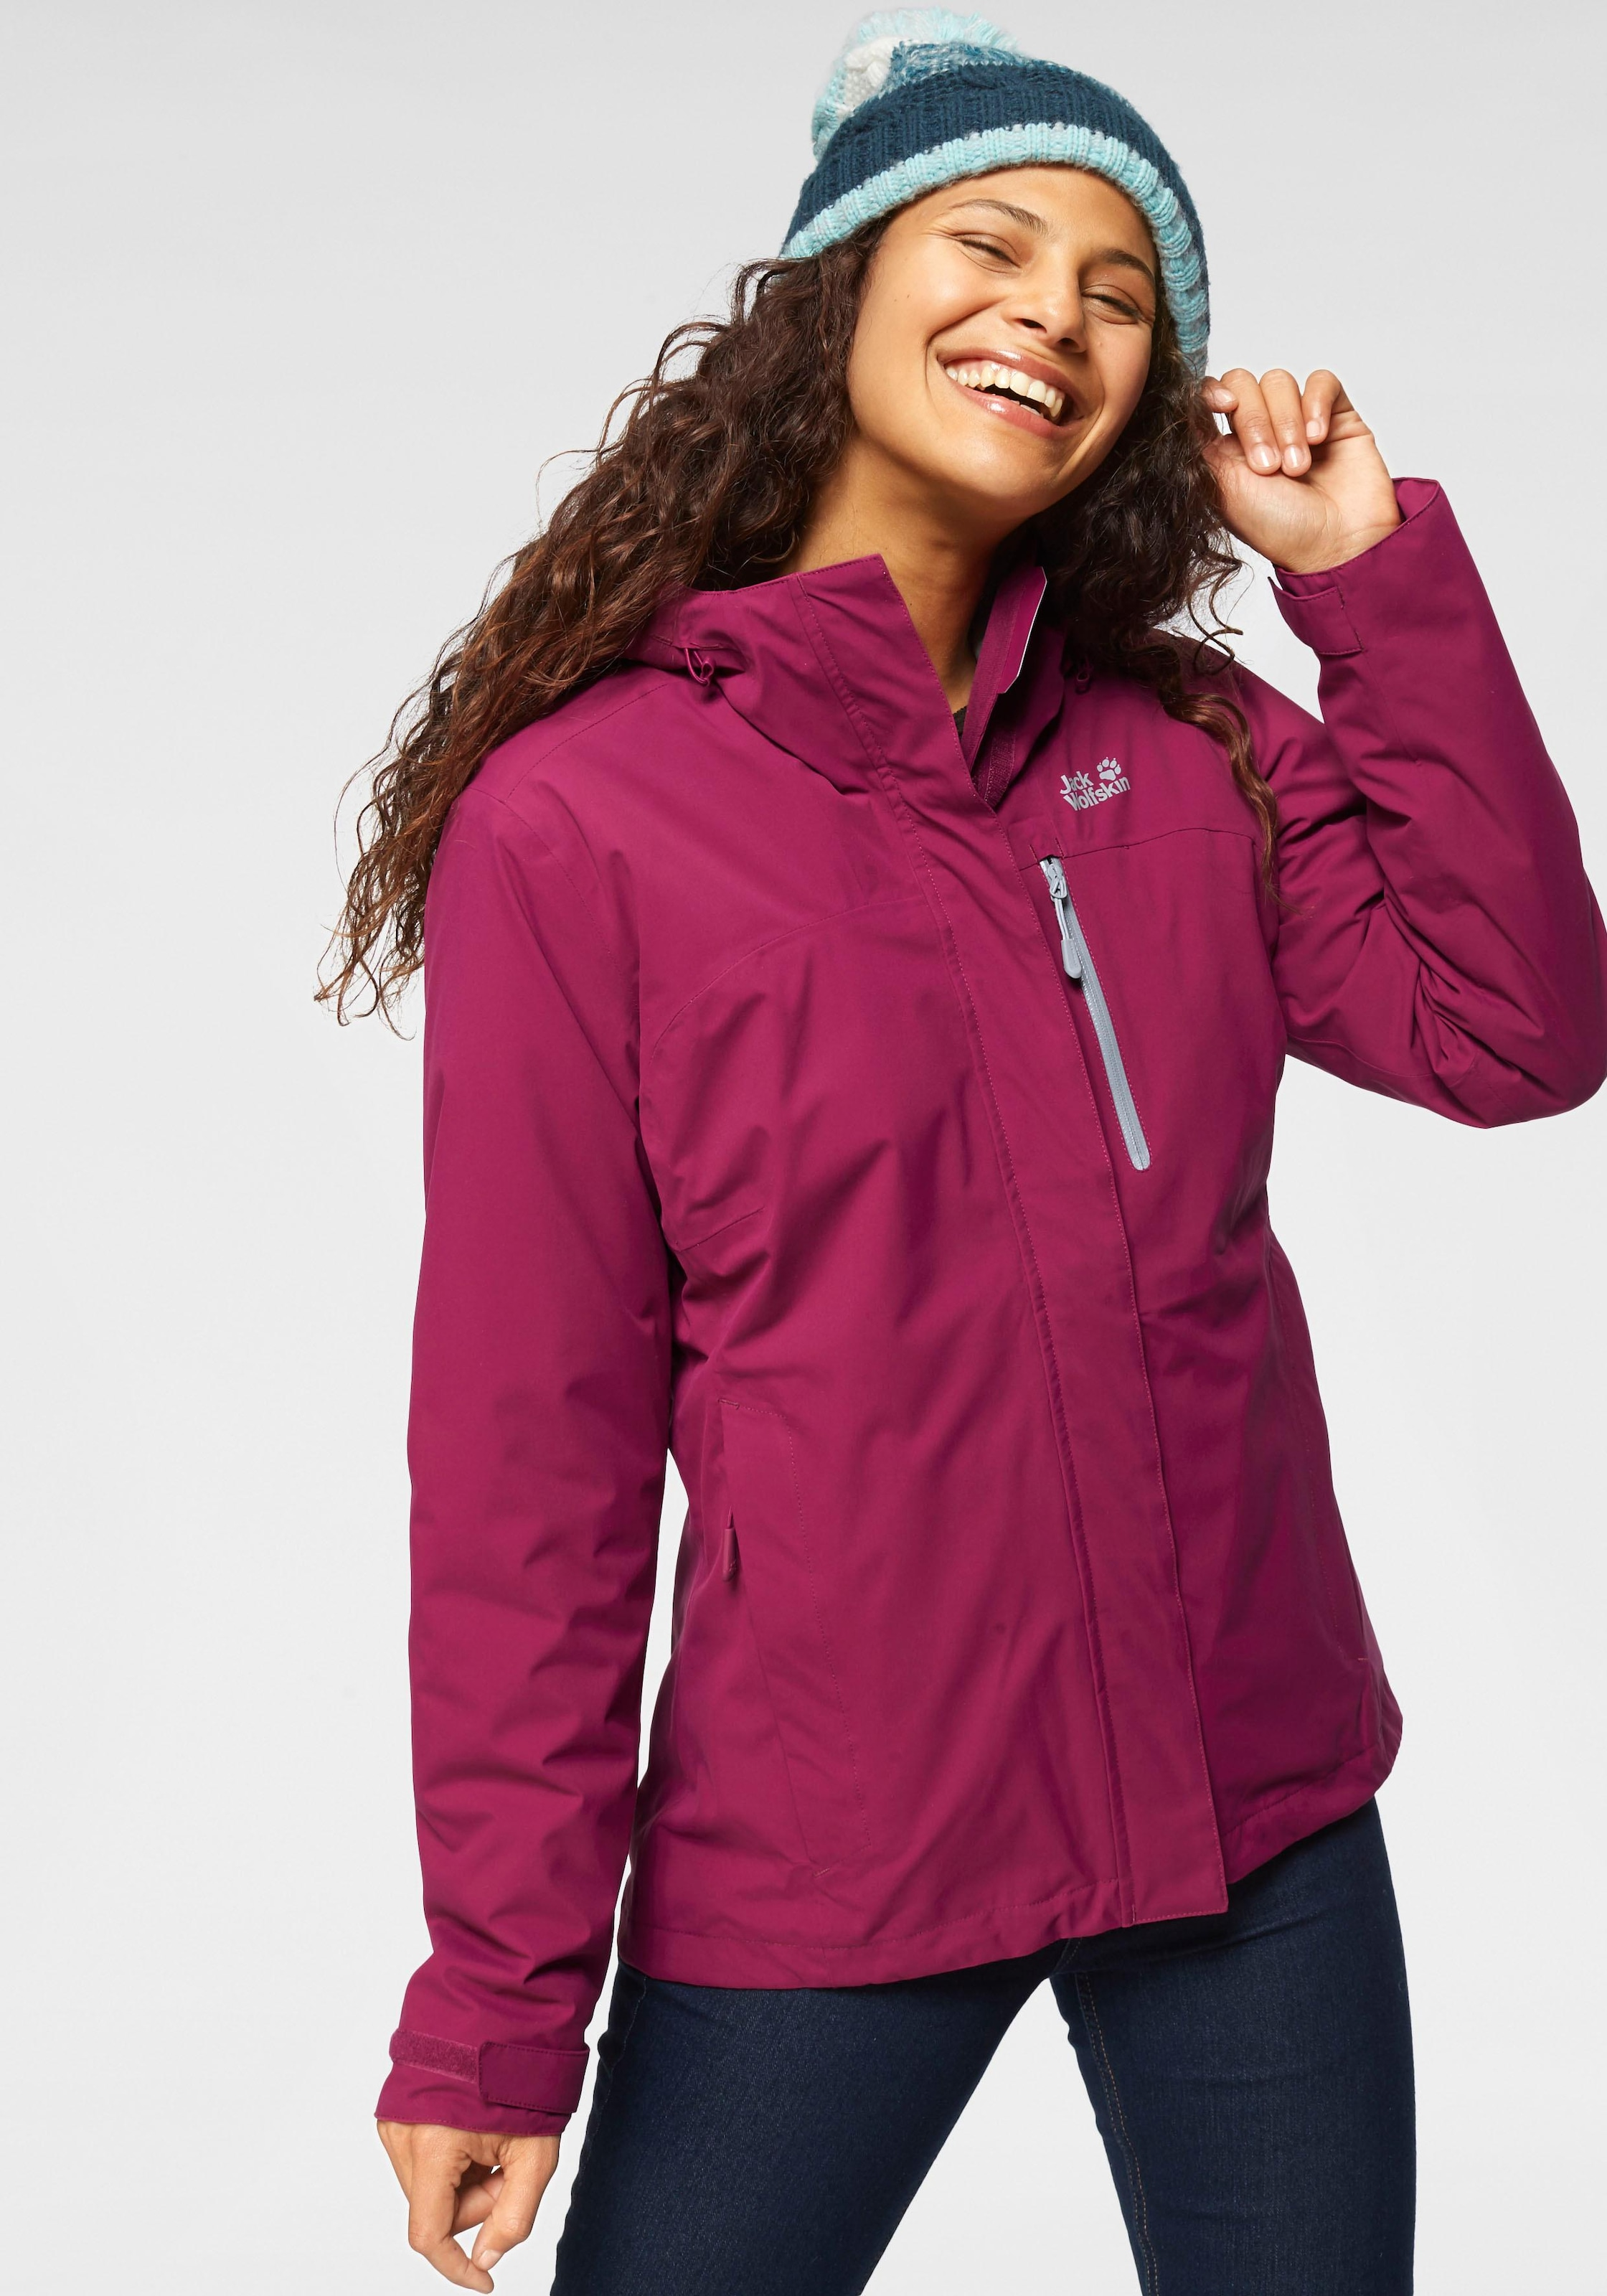 Jack Wolfskin Funktionsjacke »NORTHERN LAKE« im BAUR Onlineshop